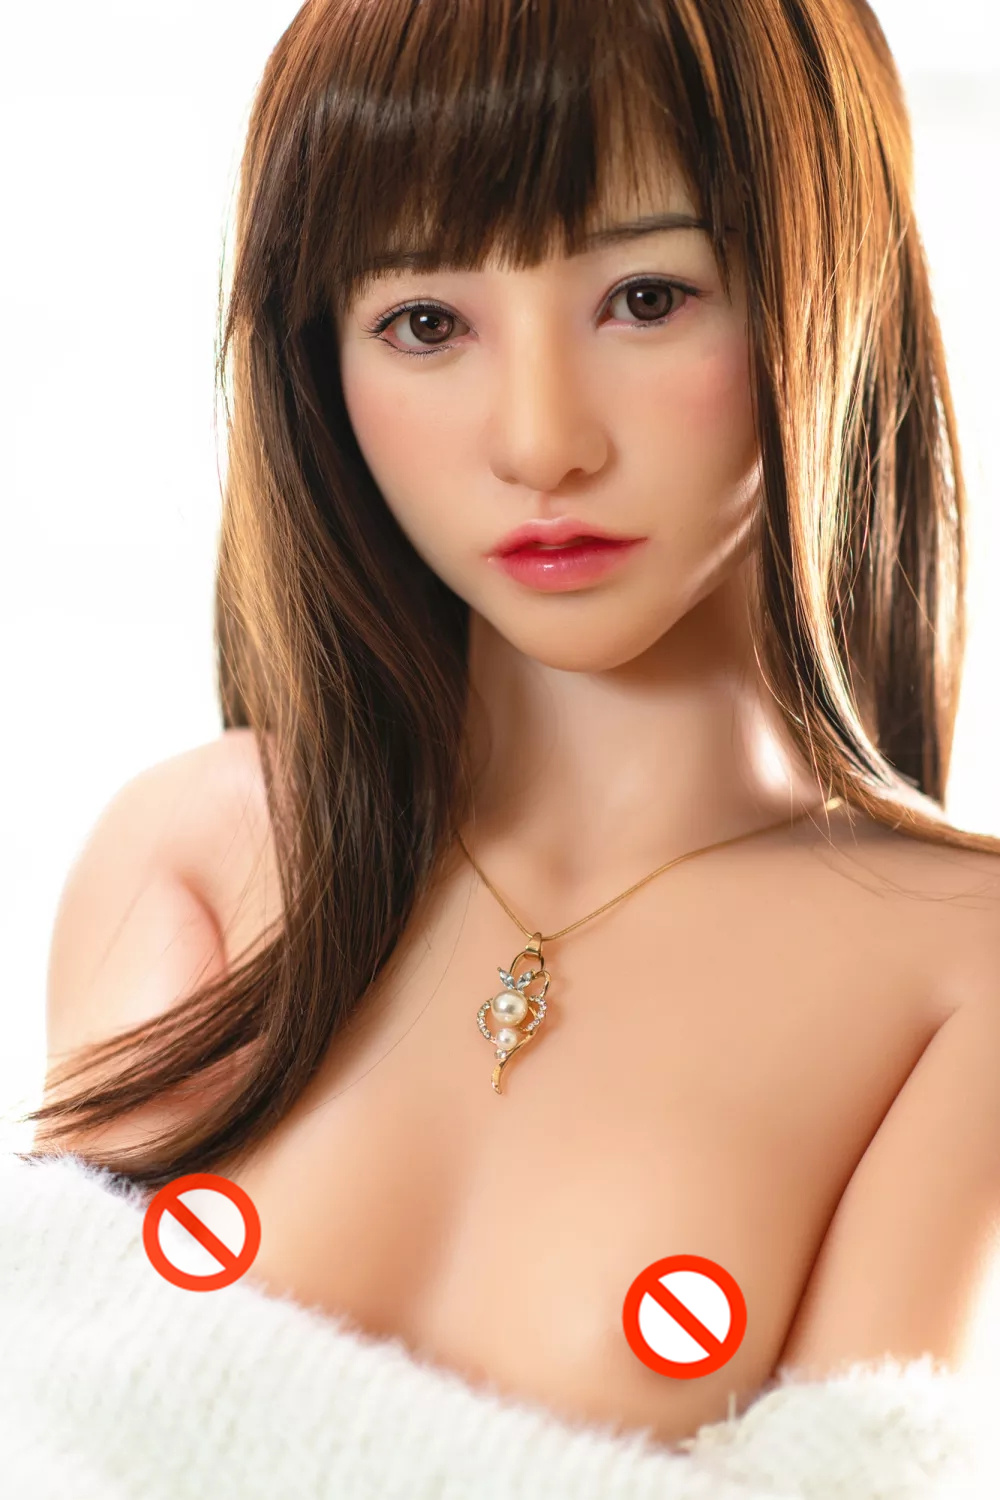 The First 100 Customers 【Amatsuka Moe 's Autograph on Formal Product Certificate】Supervised by Moe Amatsuka AV Actress Silicone Love Doll with RS Class Makeup-Head by Sino Factory  157cm/5.15ft  31kg